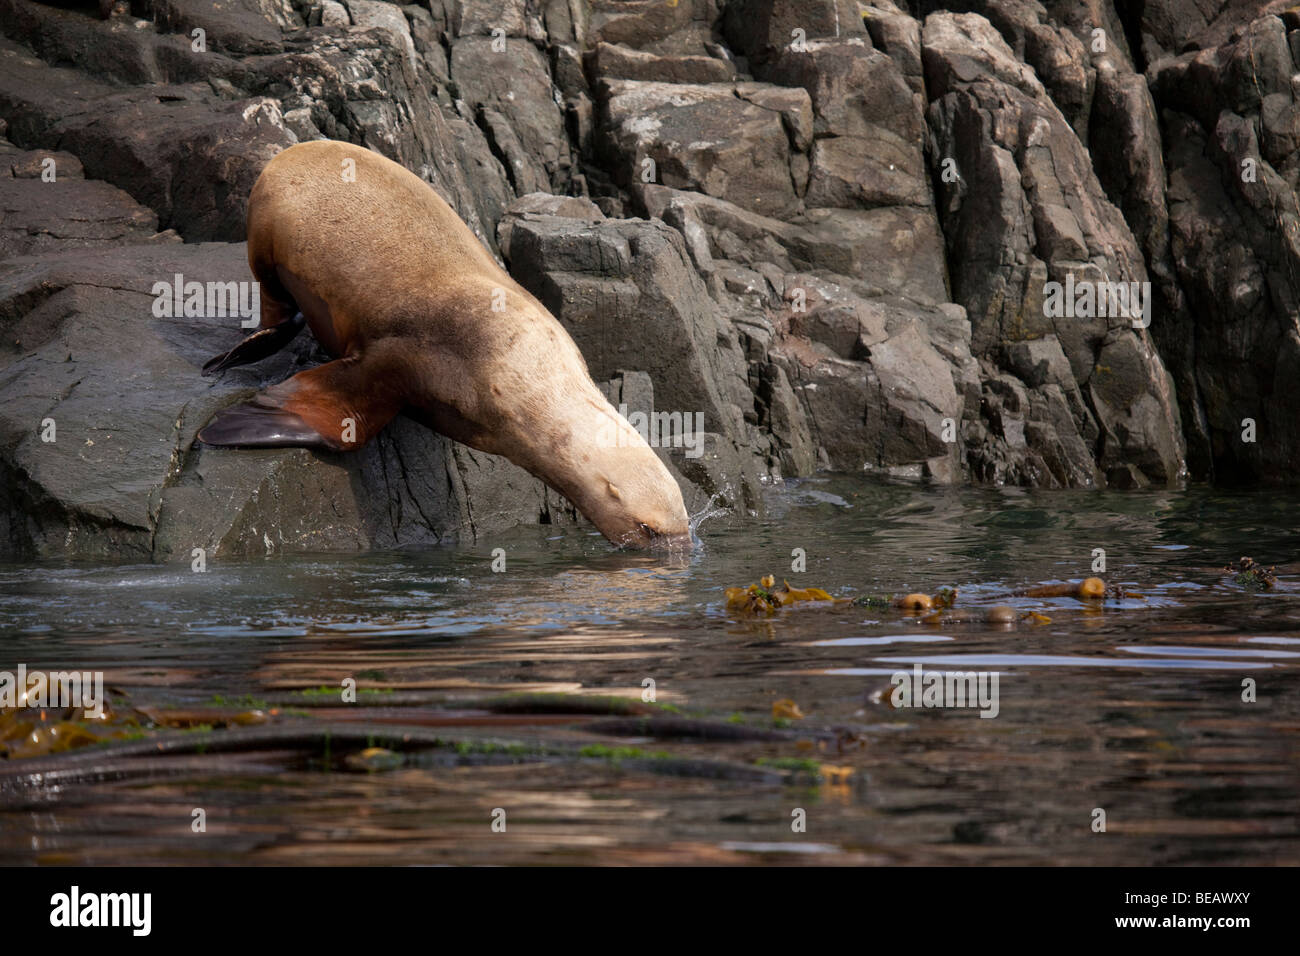 Stellar sea lion diving off a rock into the sea in northwest Canada - Stock Image